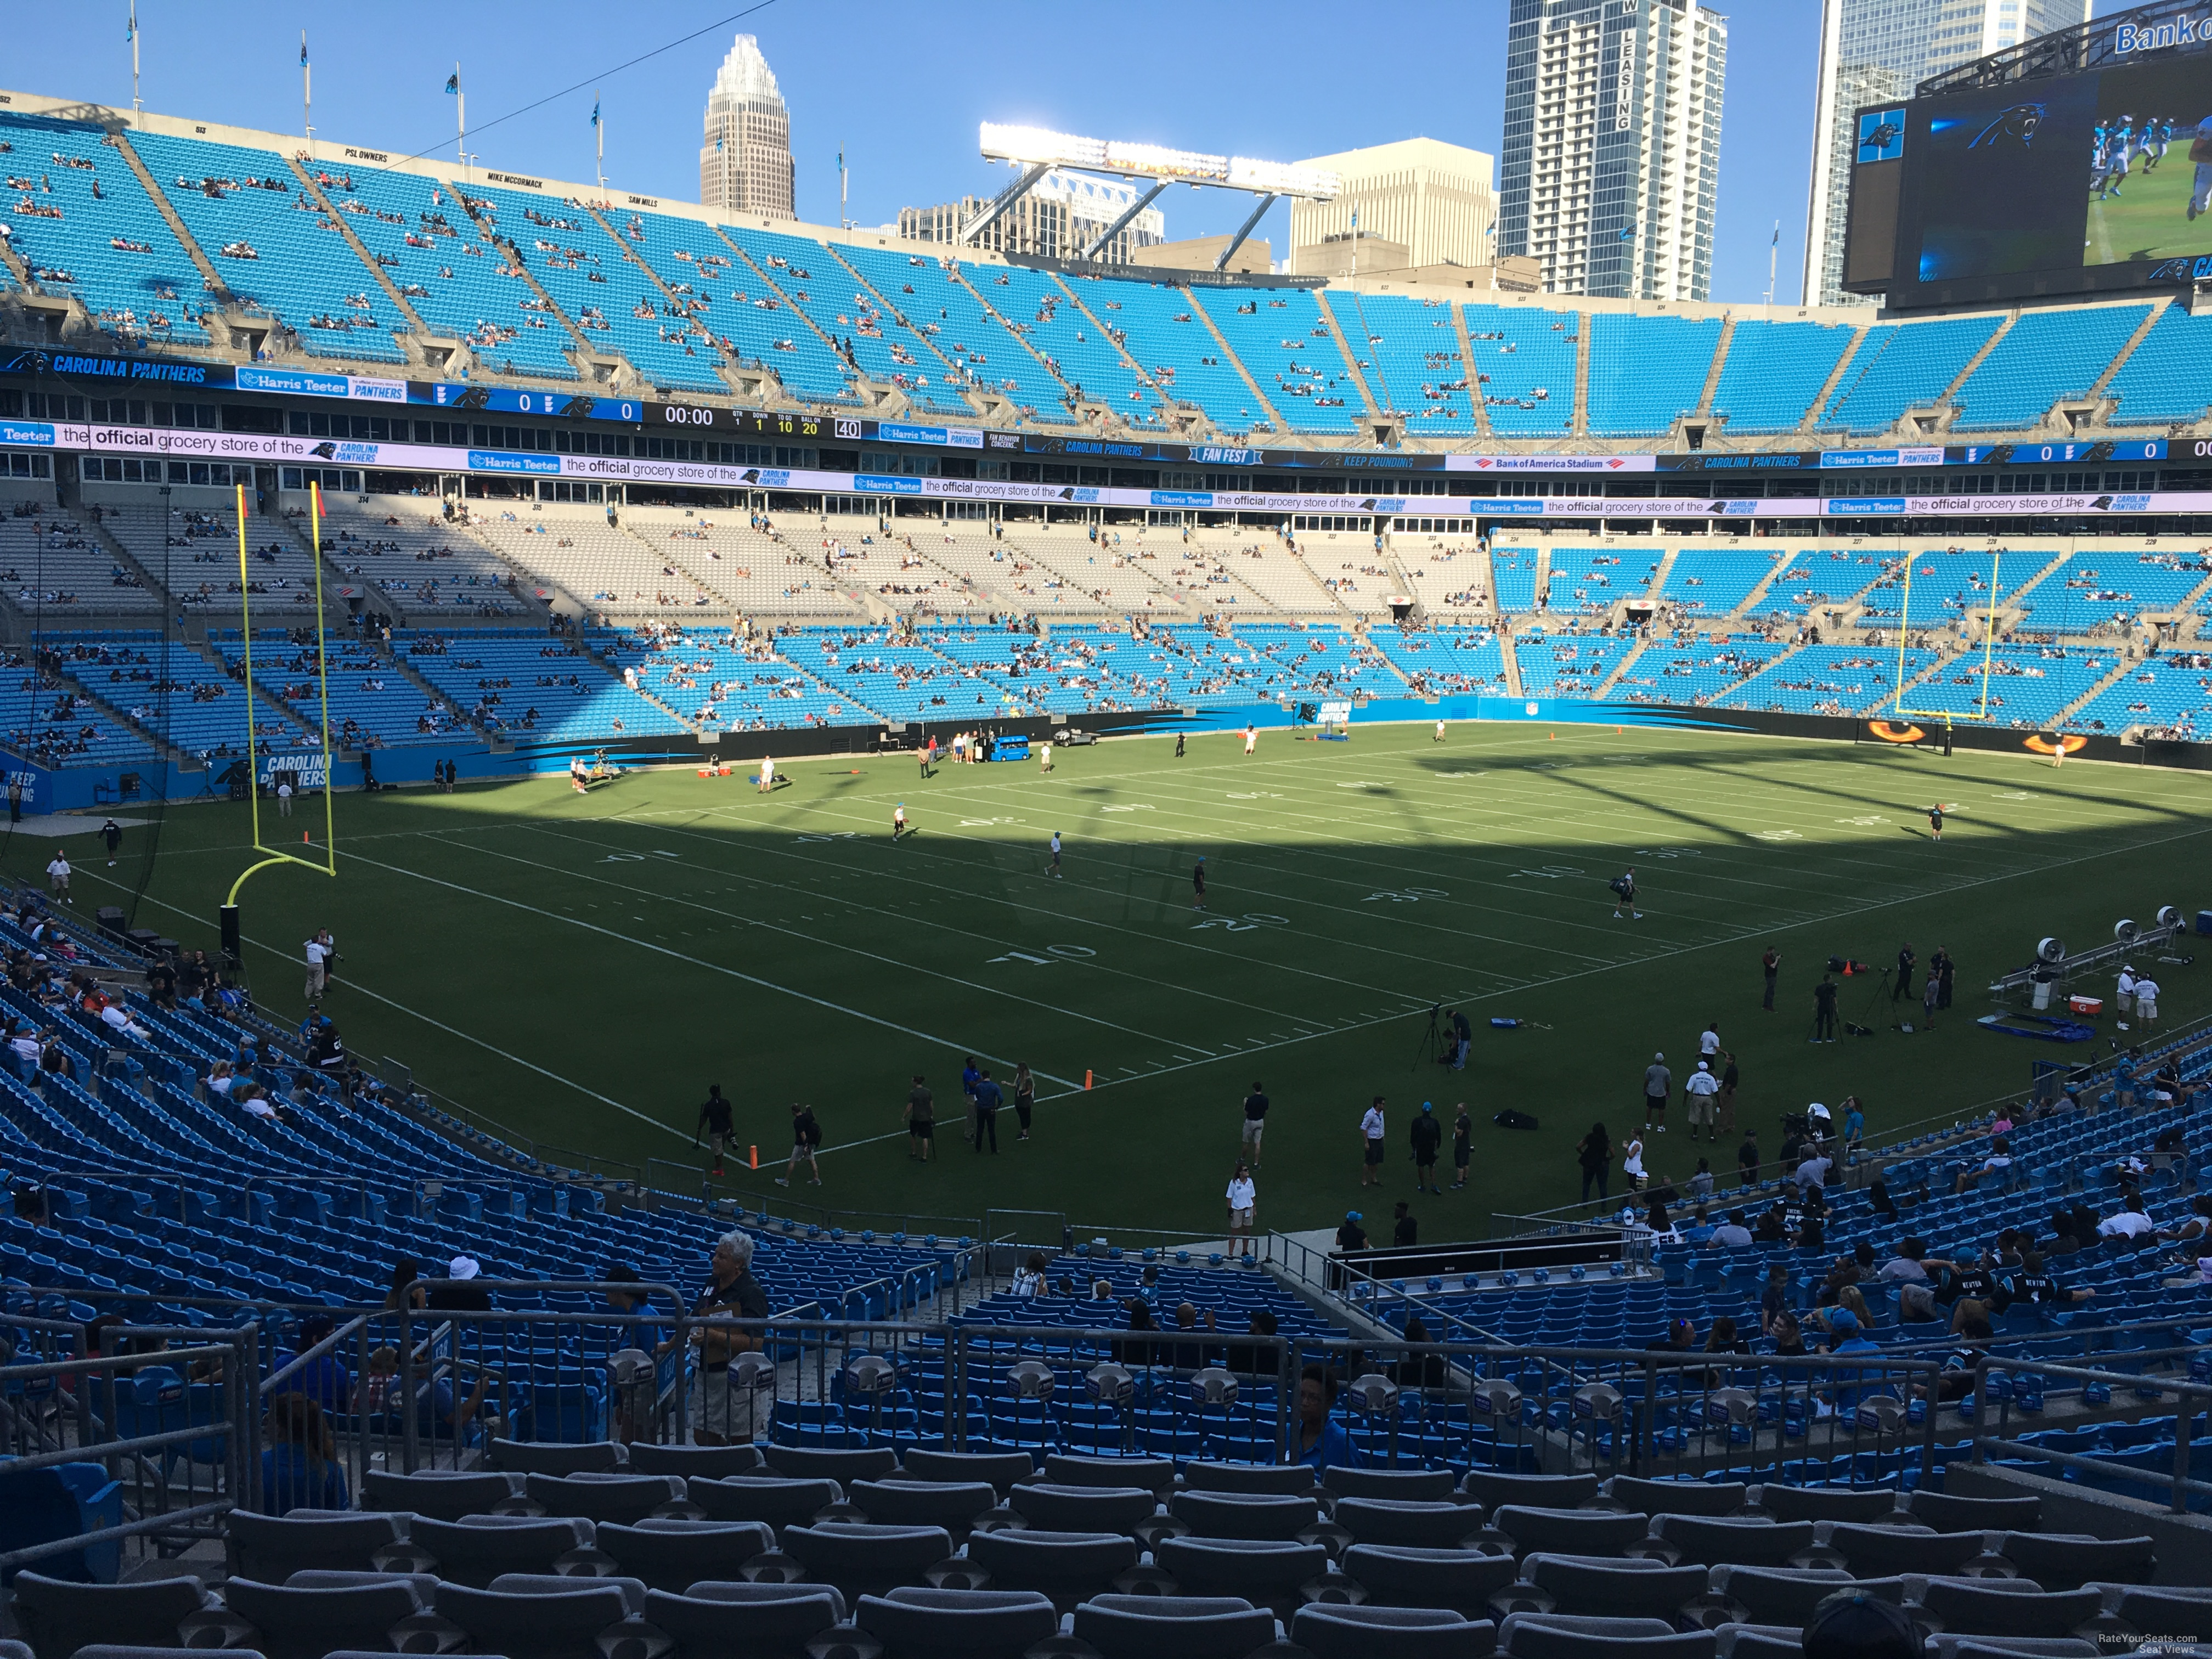 Section 351 at Bank of America Stadium - RateYourSeats.com